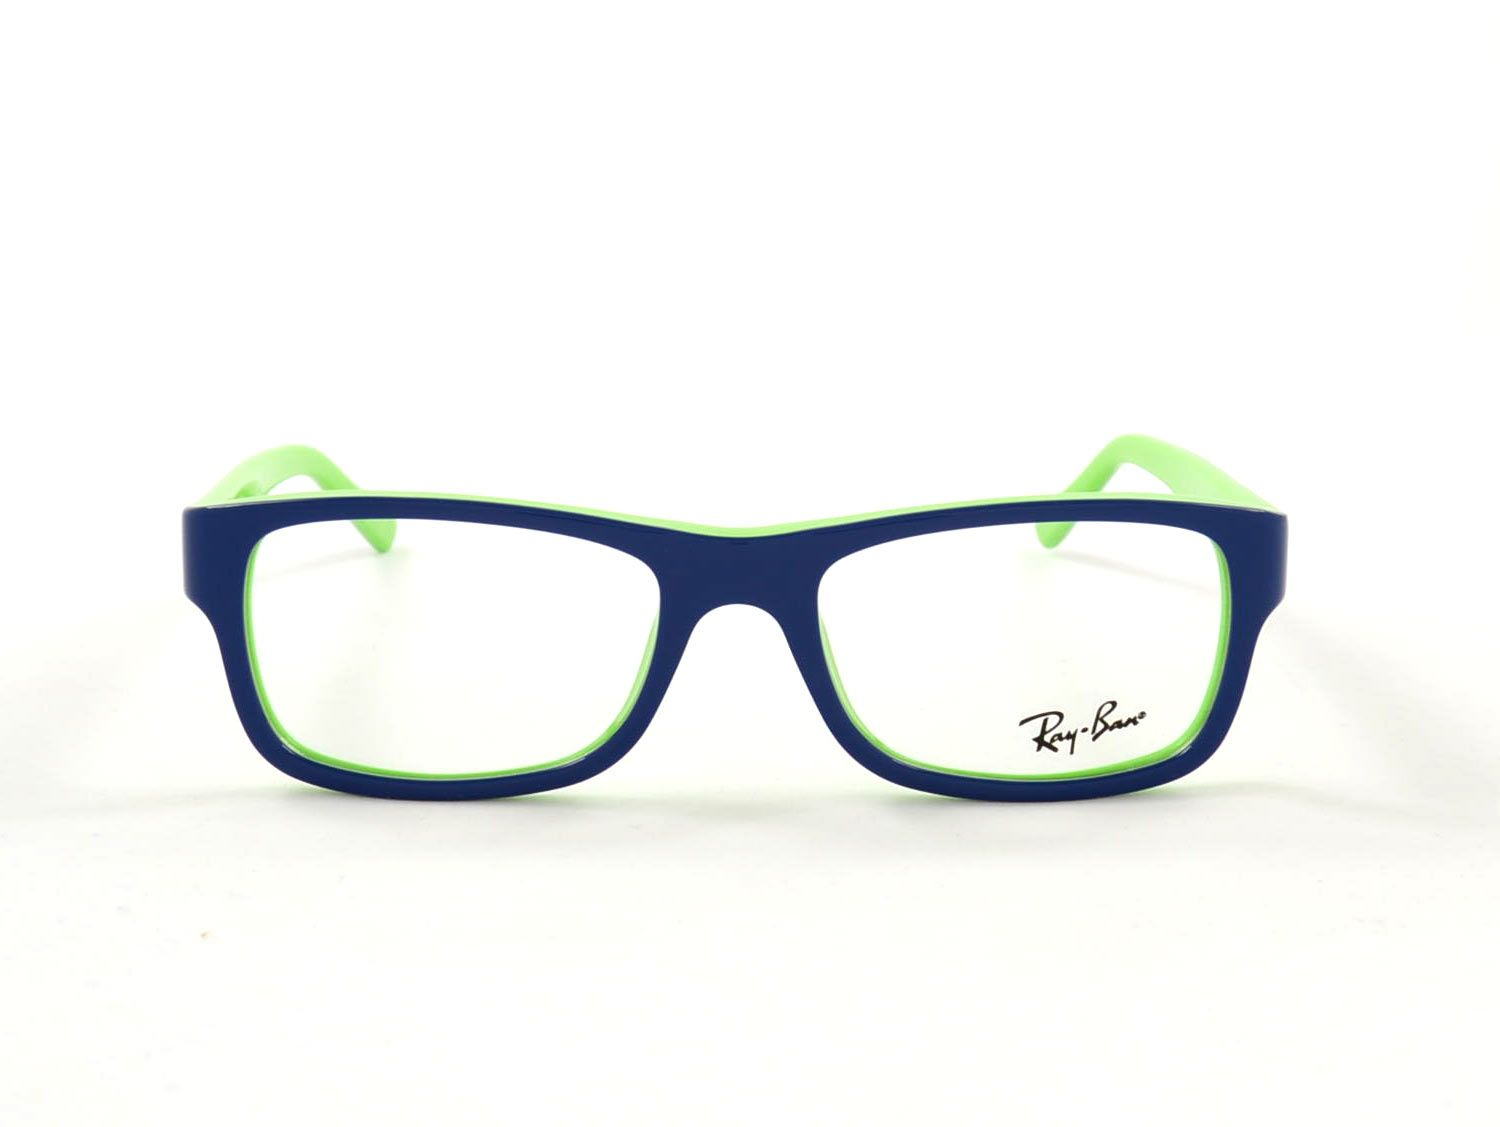 09e2a8a584 Ray Ban RB5268 5182 50 Top Blue on Green (Brillen) Brillen online kaufen